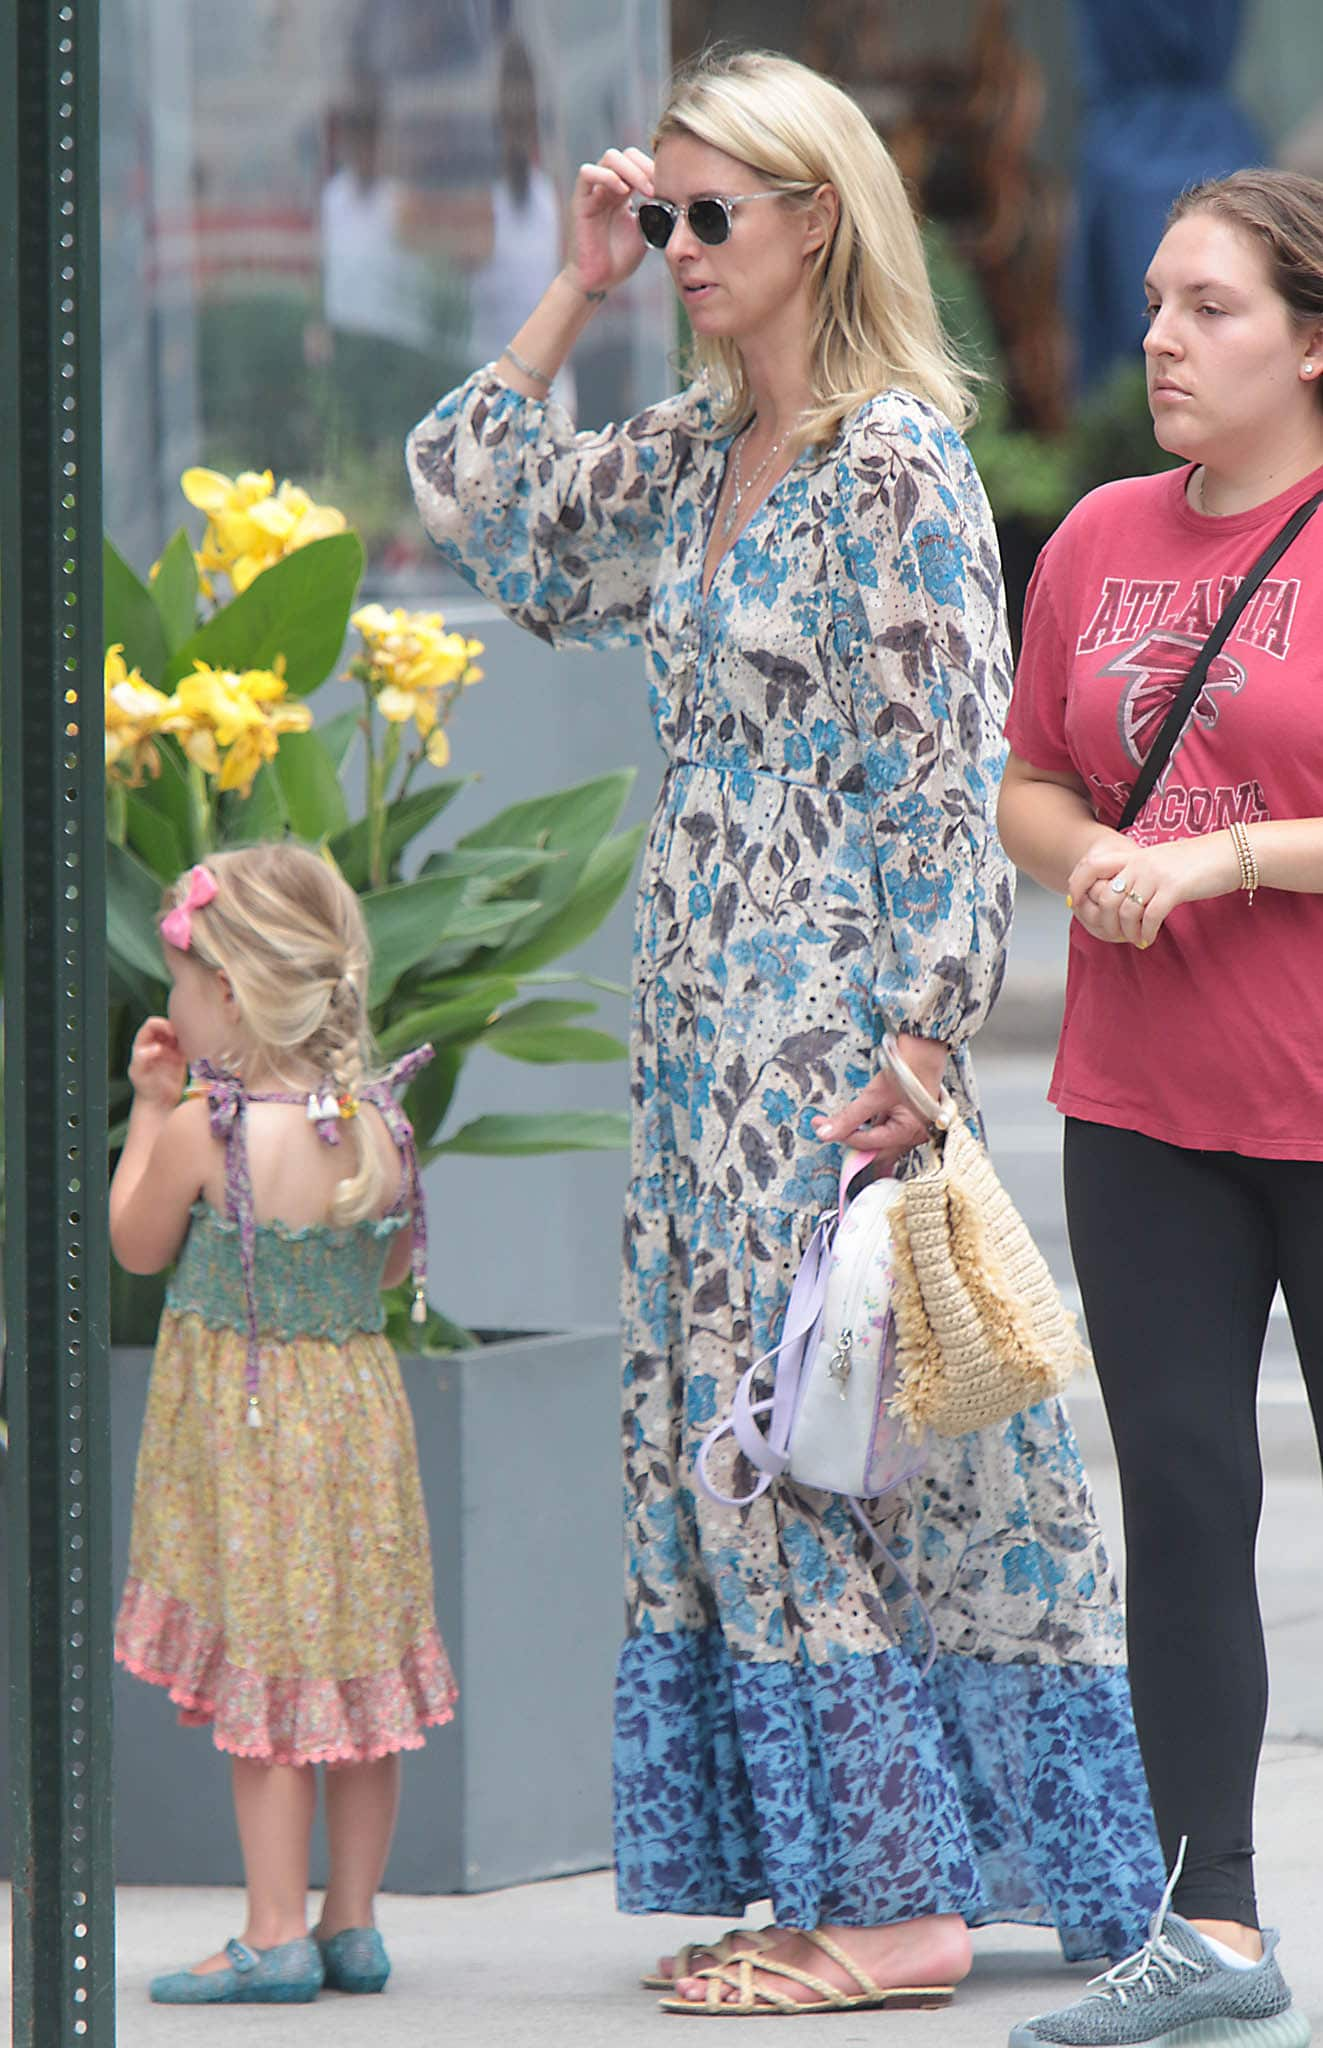 Nicky Hilton steps out with her daughter in New York City on July 29, 2012